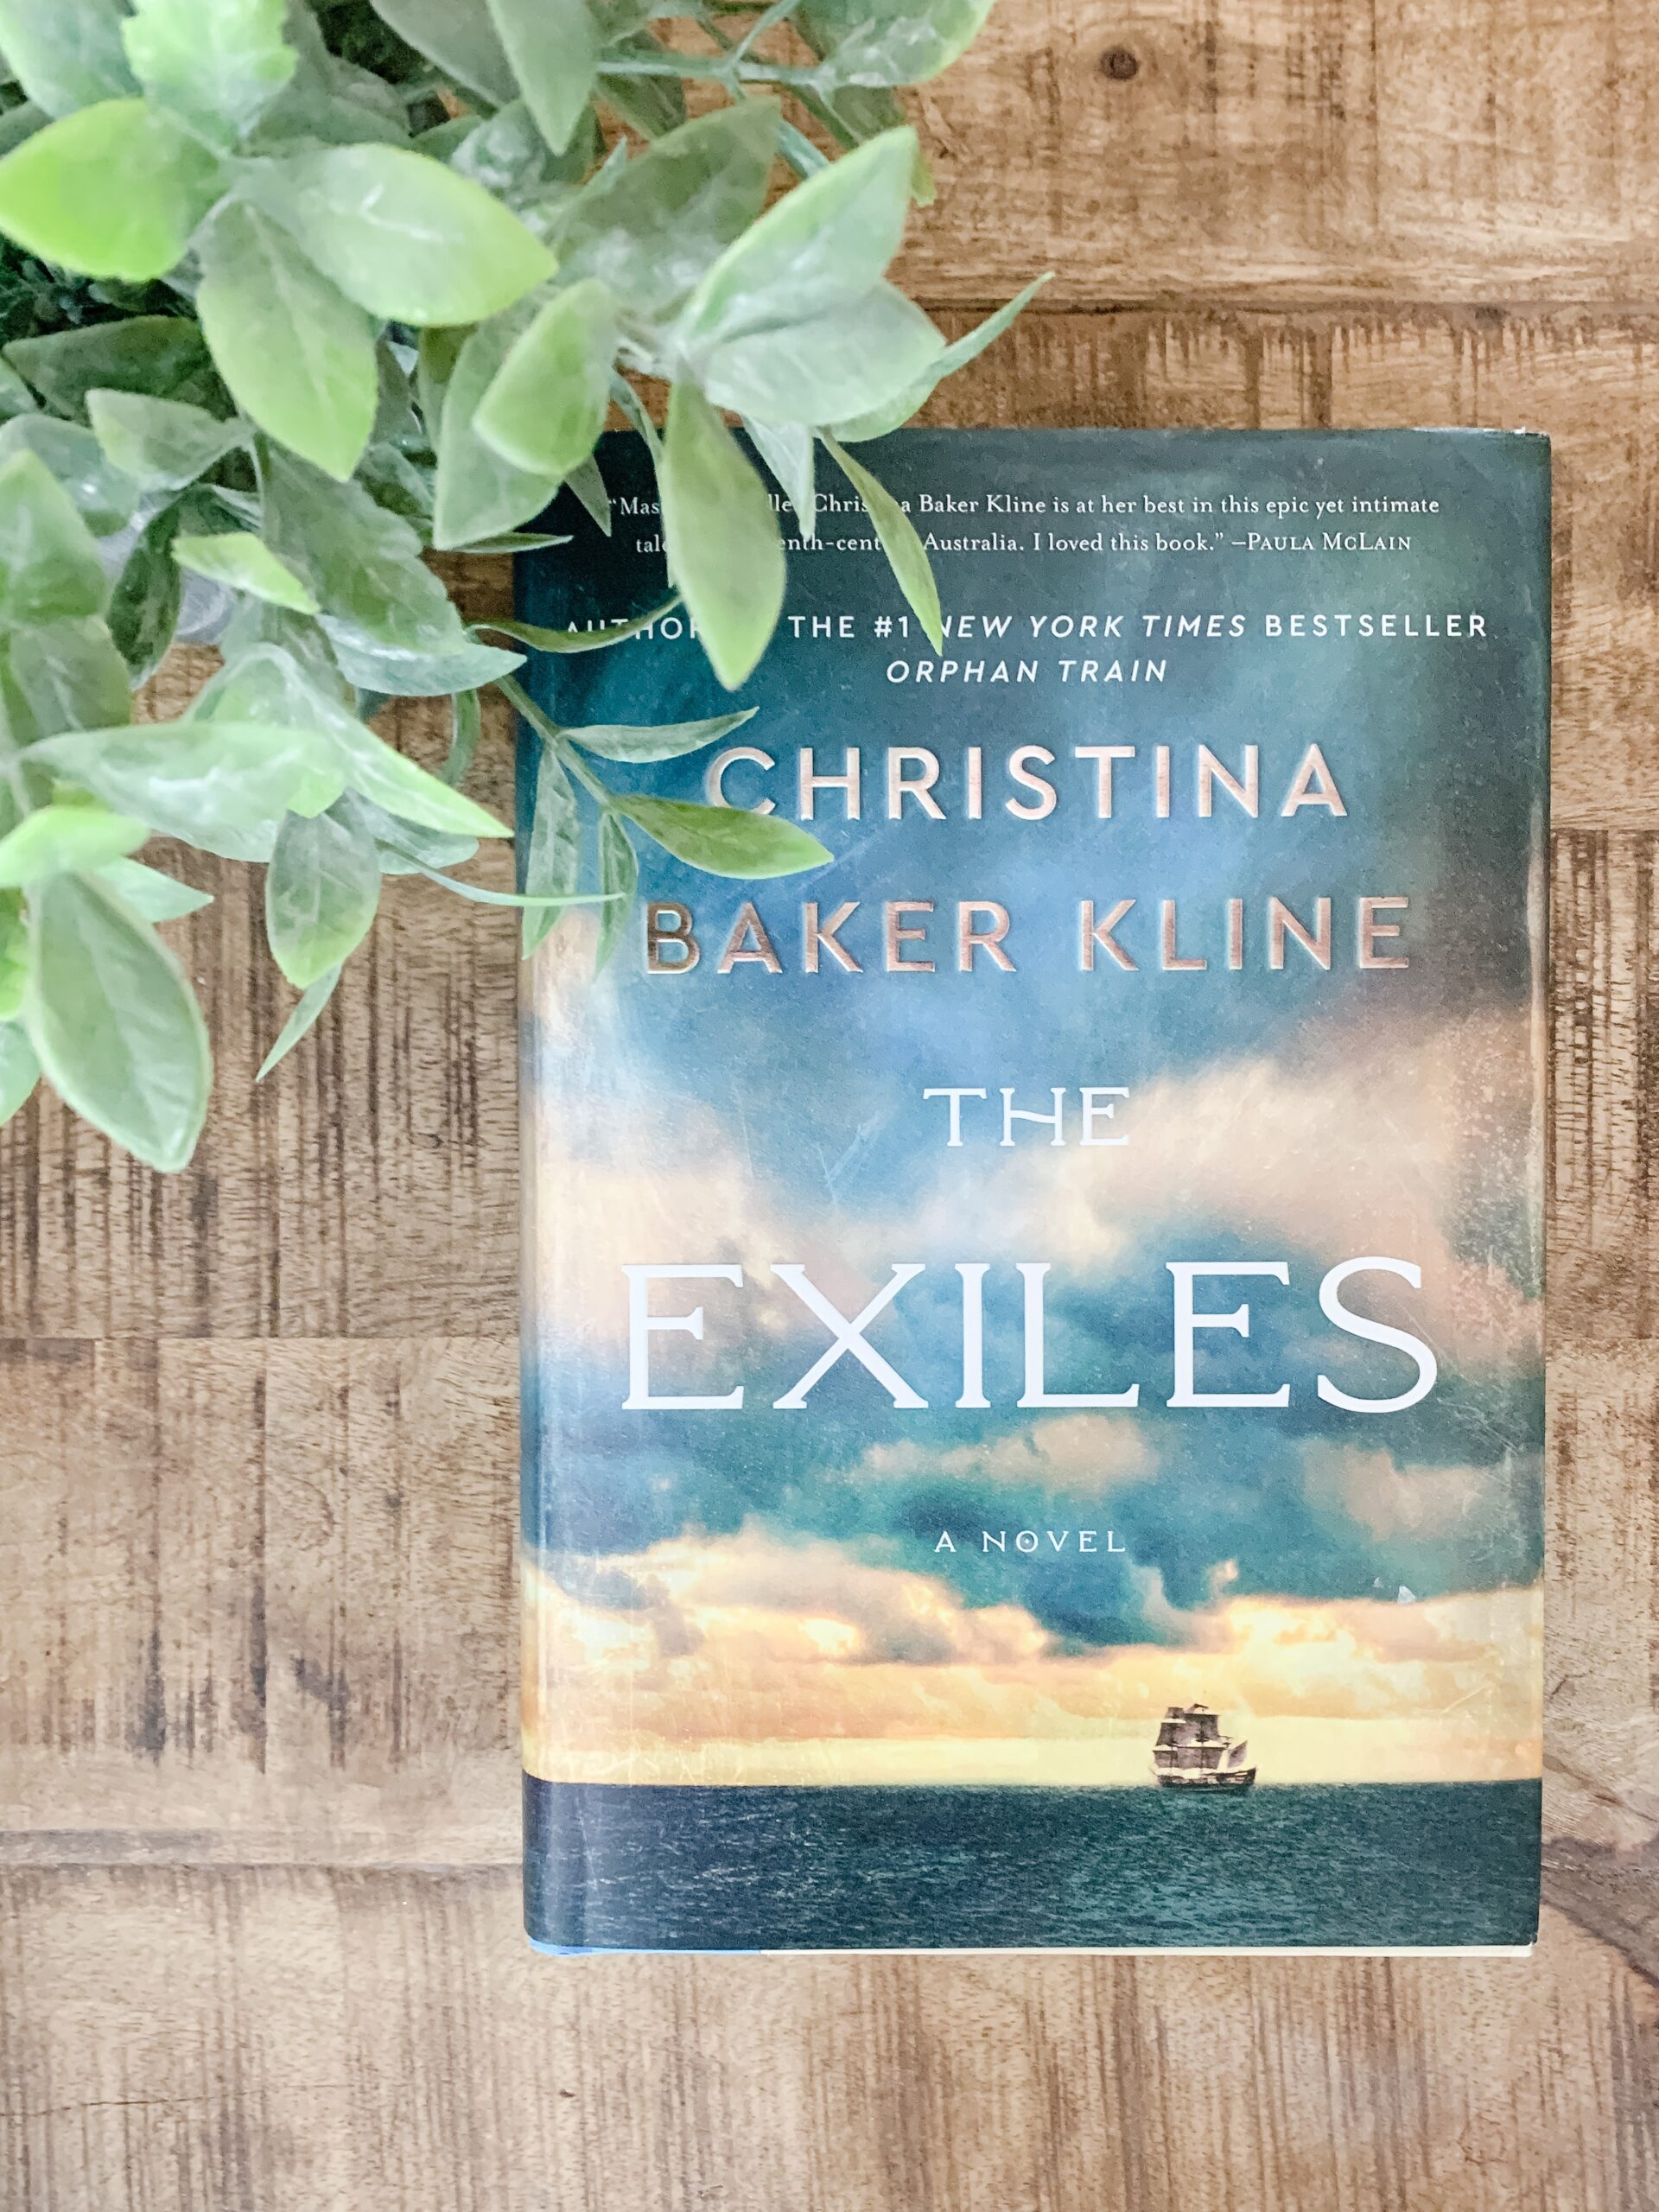 image of the novel The Exiles by Christina Baker Kline